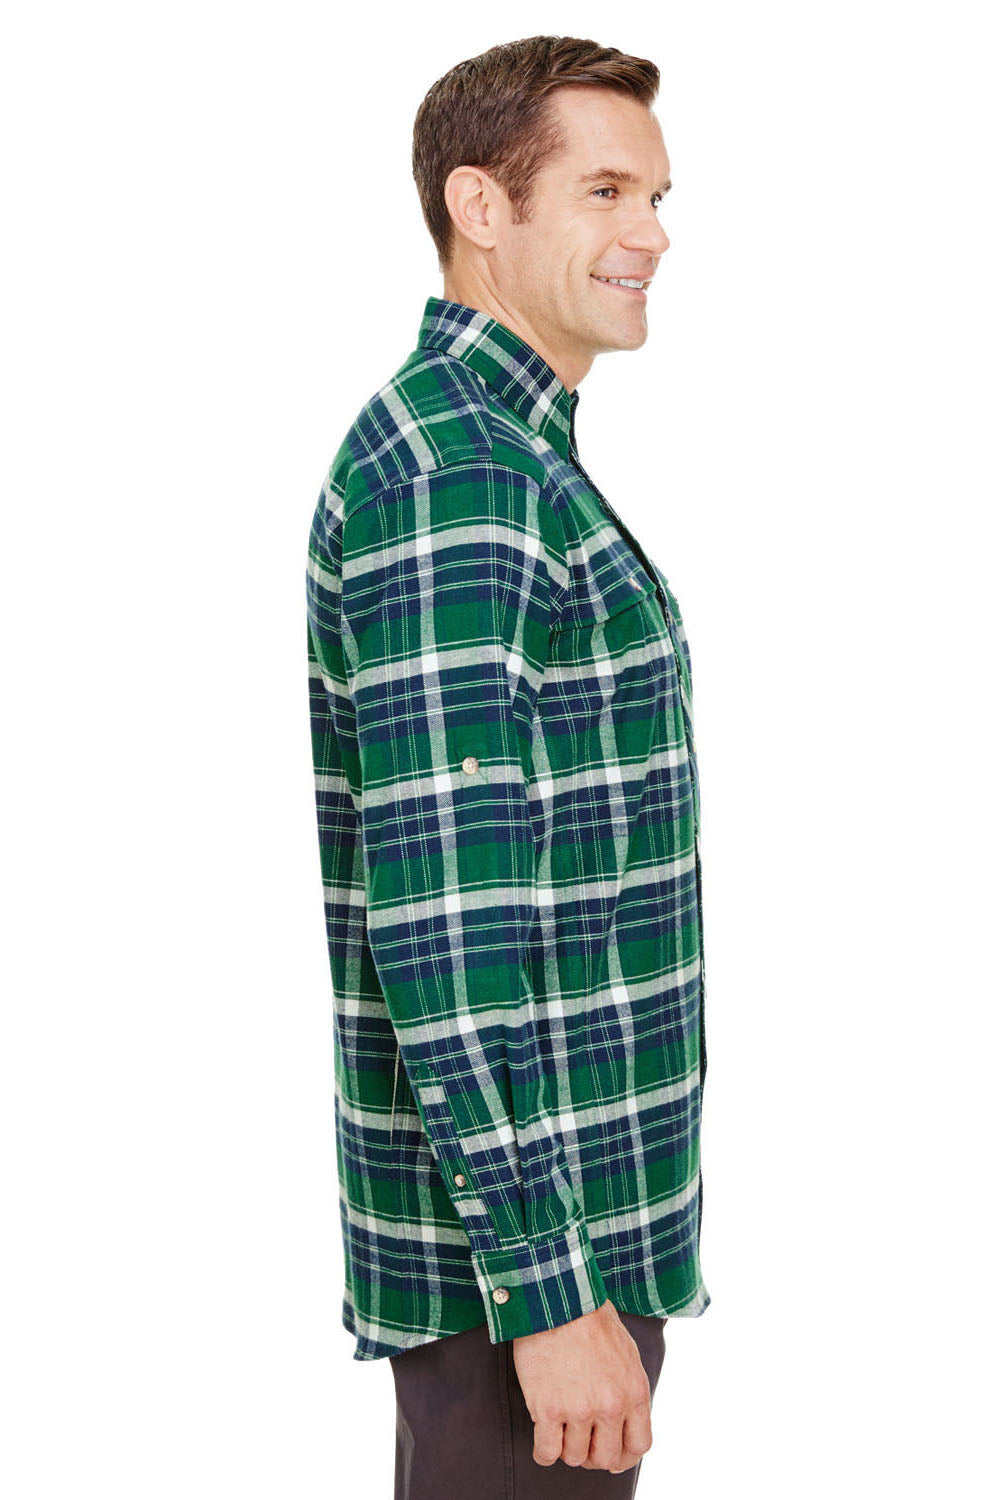 Backpacker BP7091 Mens Stretch Flannel Long Sleeve Button Down Shirt w/ Double Pockets Forest Green Side